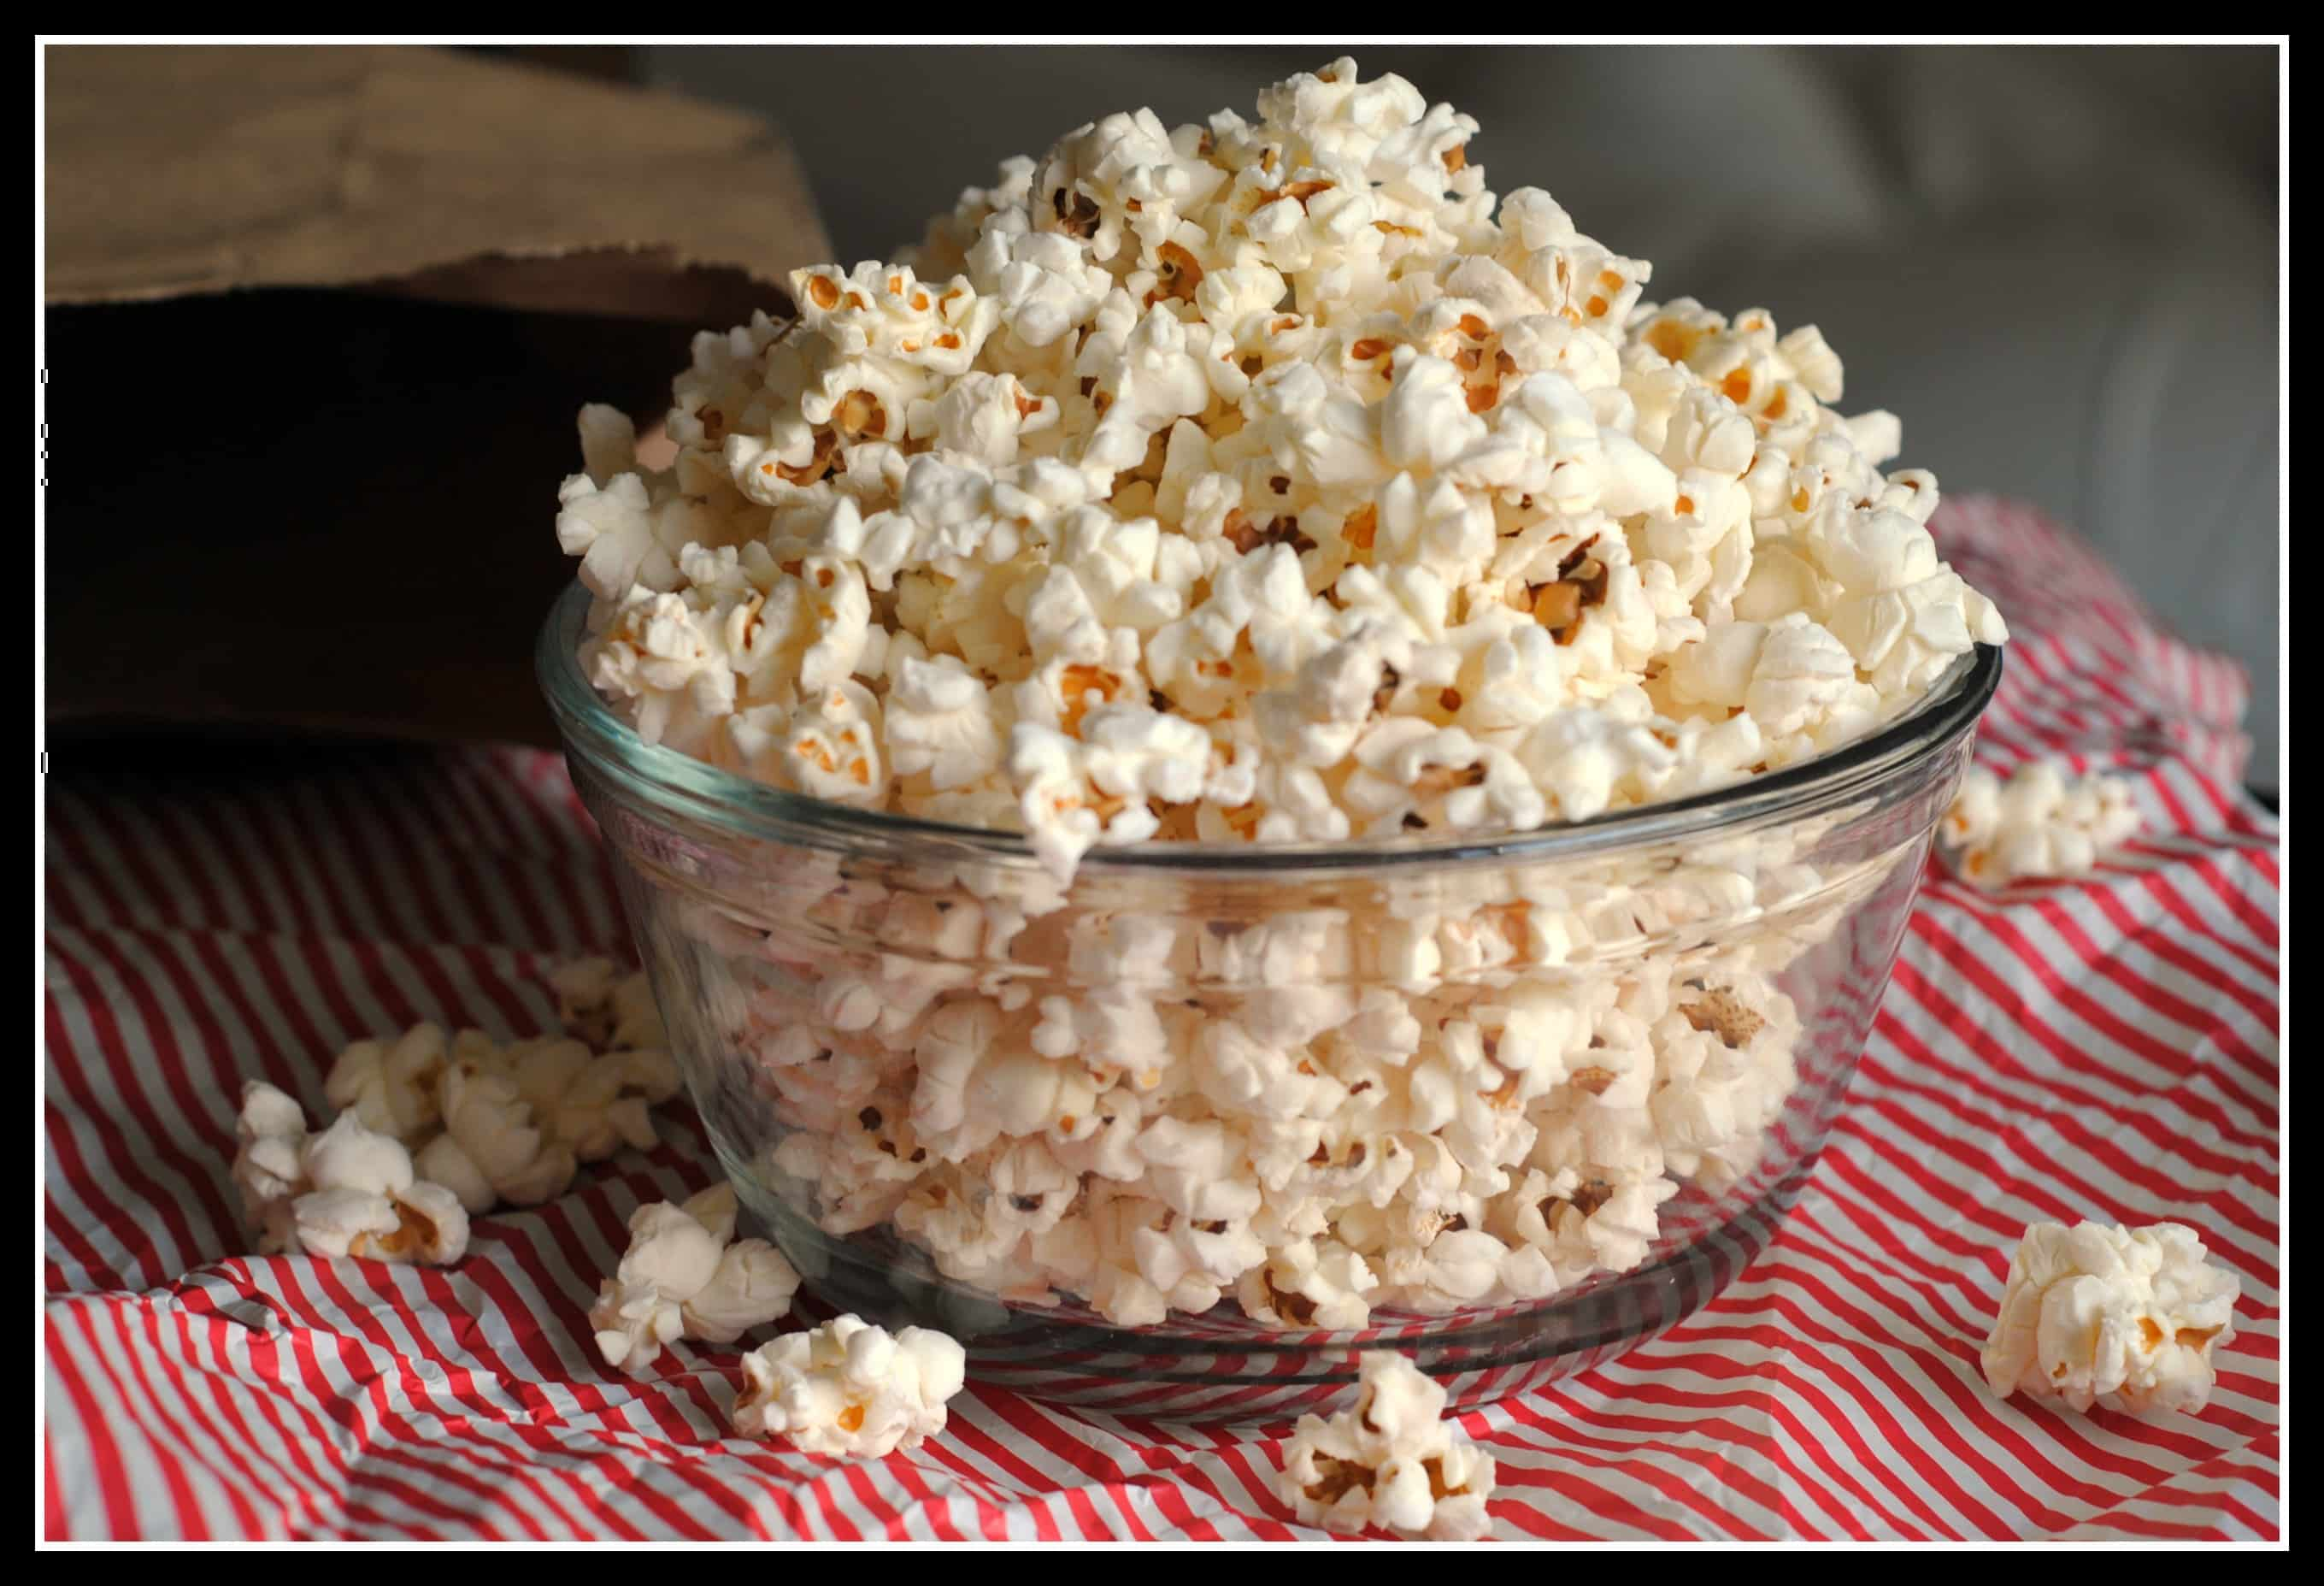 Bowl of popcorn on tablecloth